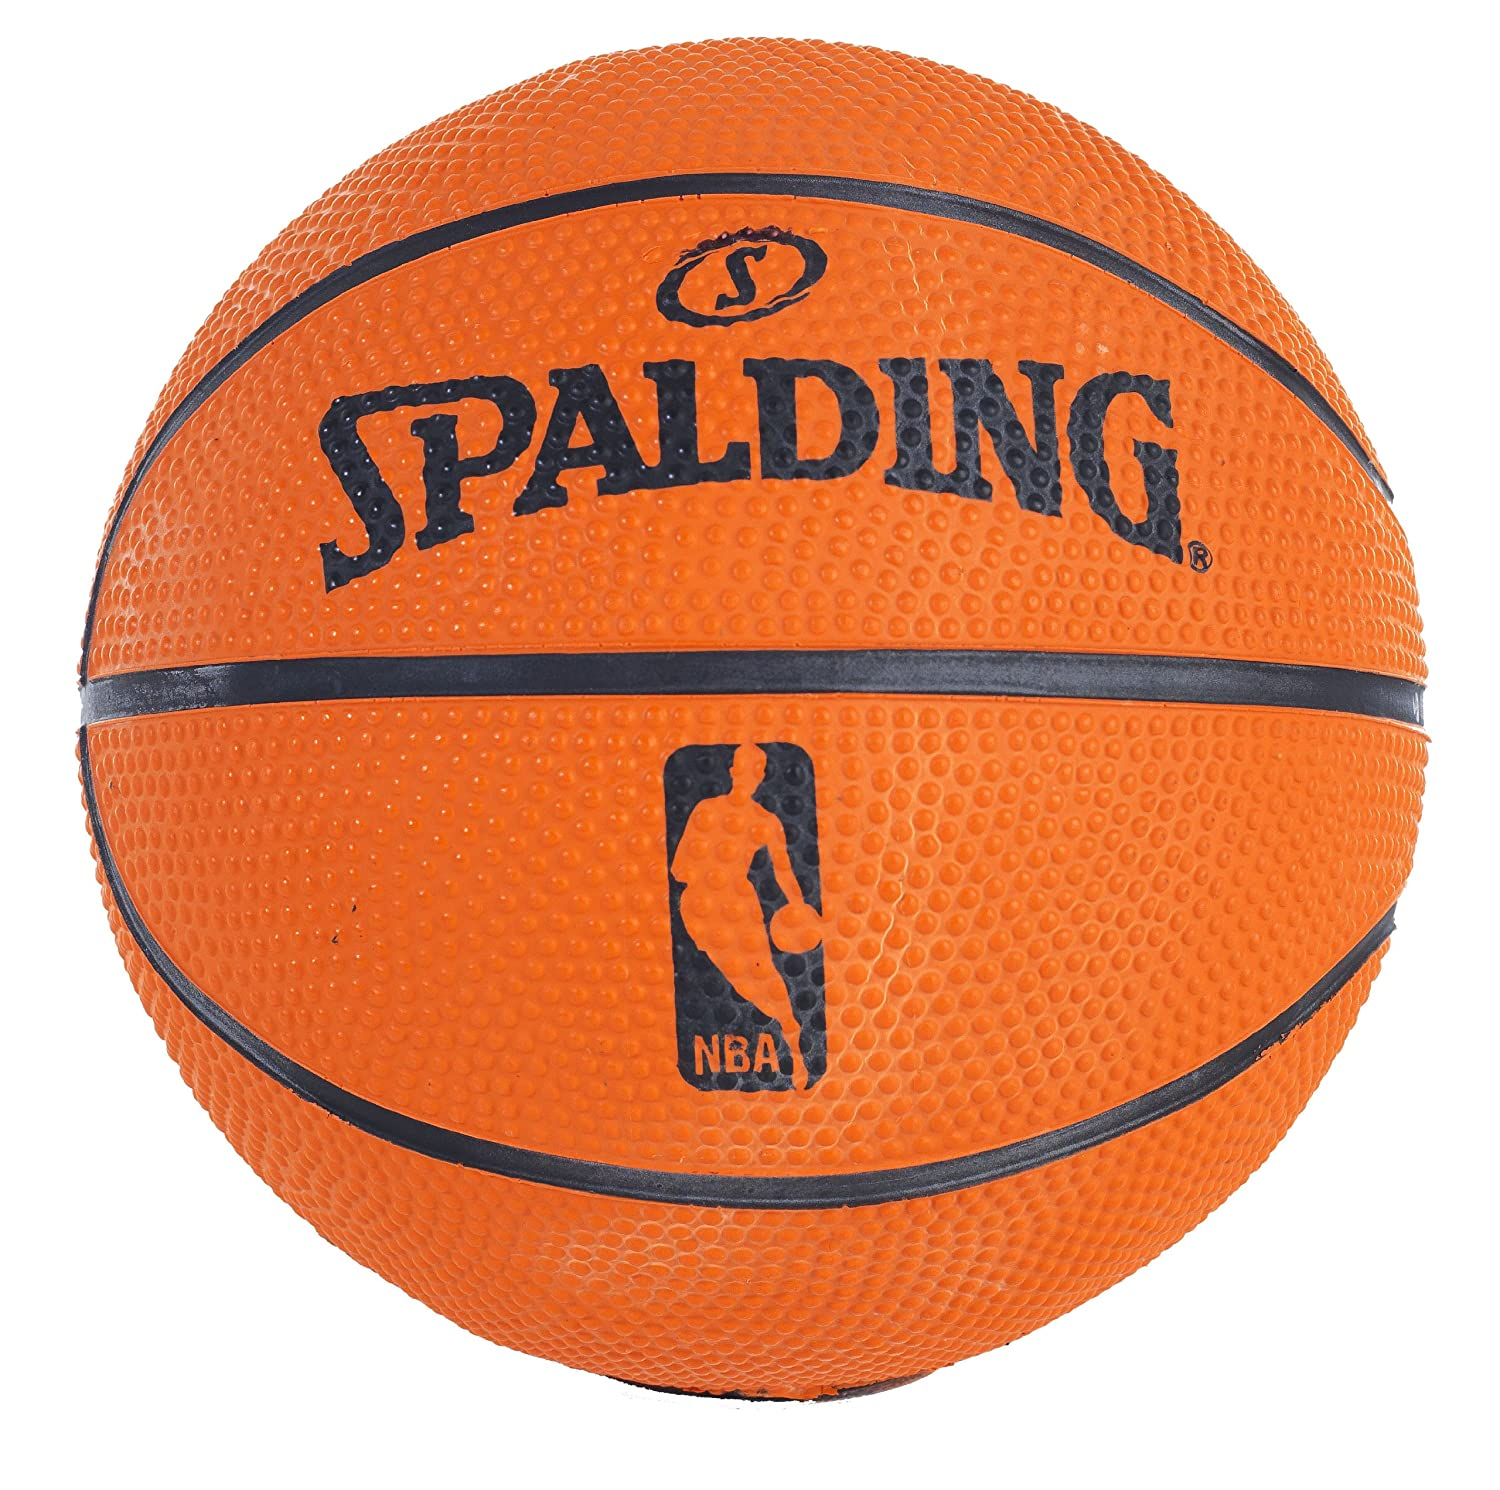 Spalding mini basketball wall mount game backboard ball indoor nba official toys ebay - Spalding basketball images ...